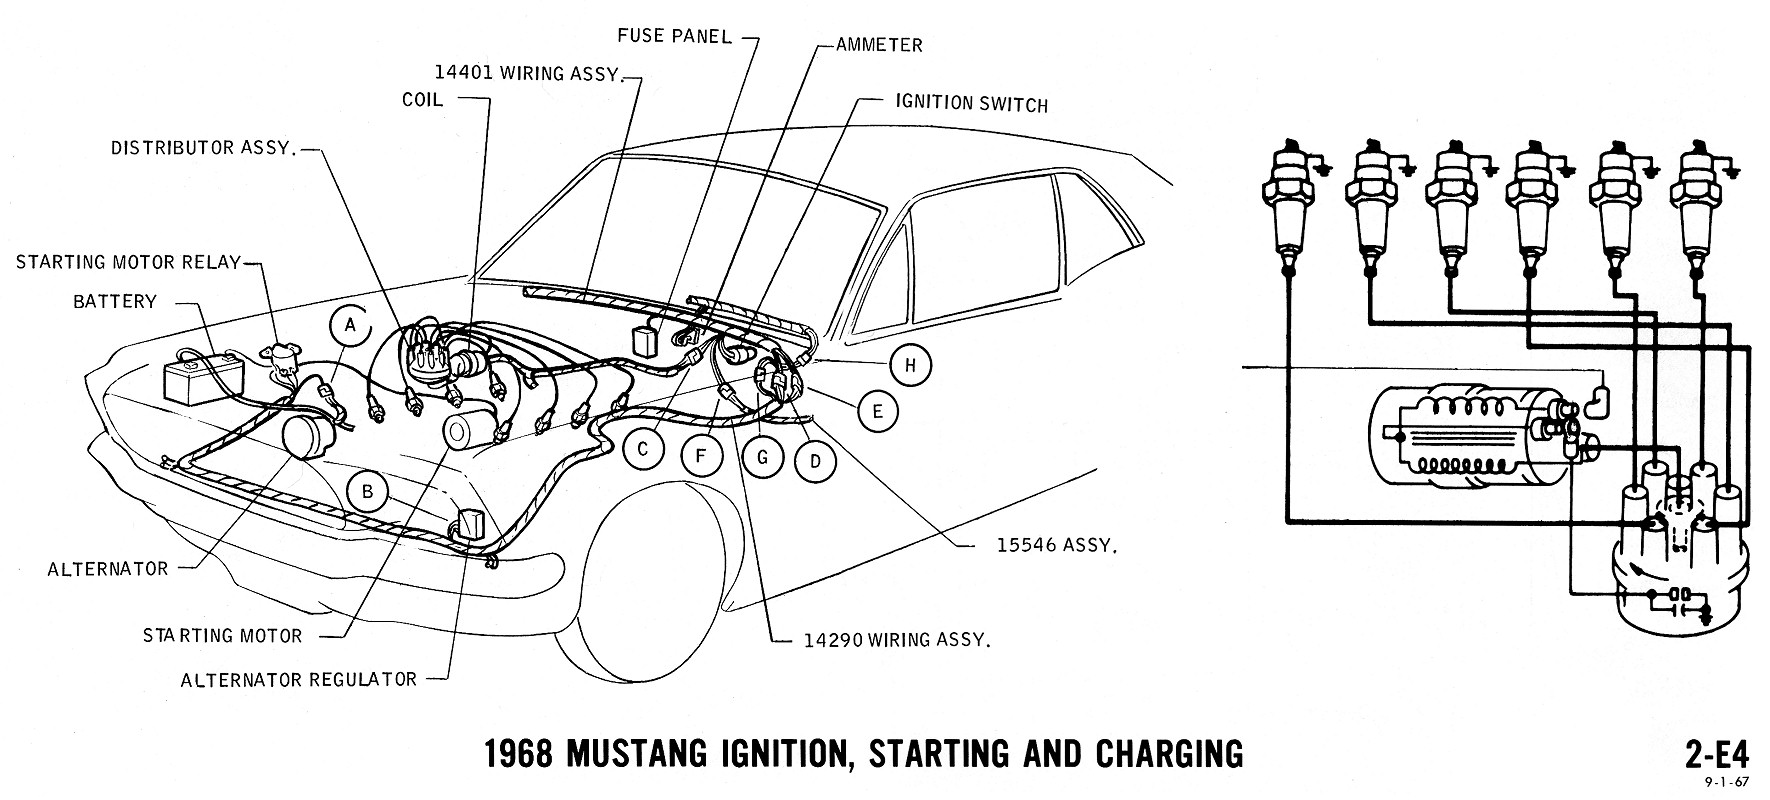 1968 mustang wiper wiring diagrams 1968 gmc wiper wiring diagram